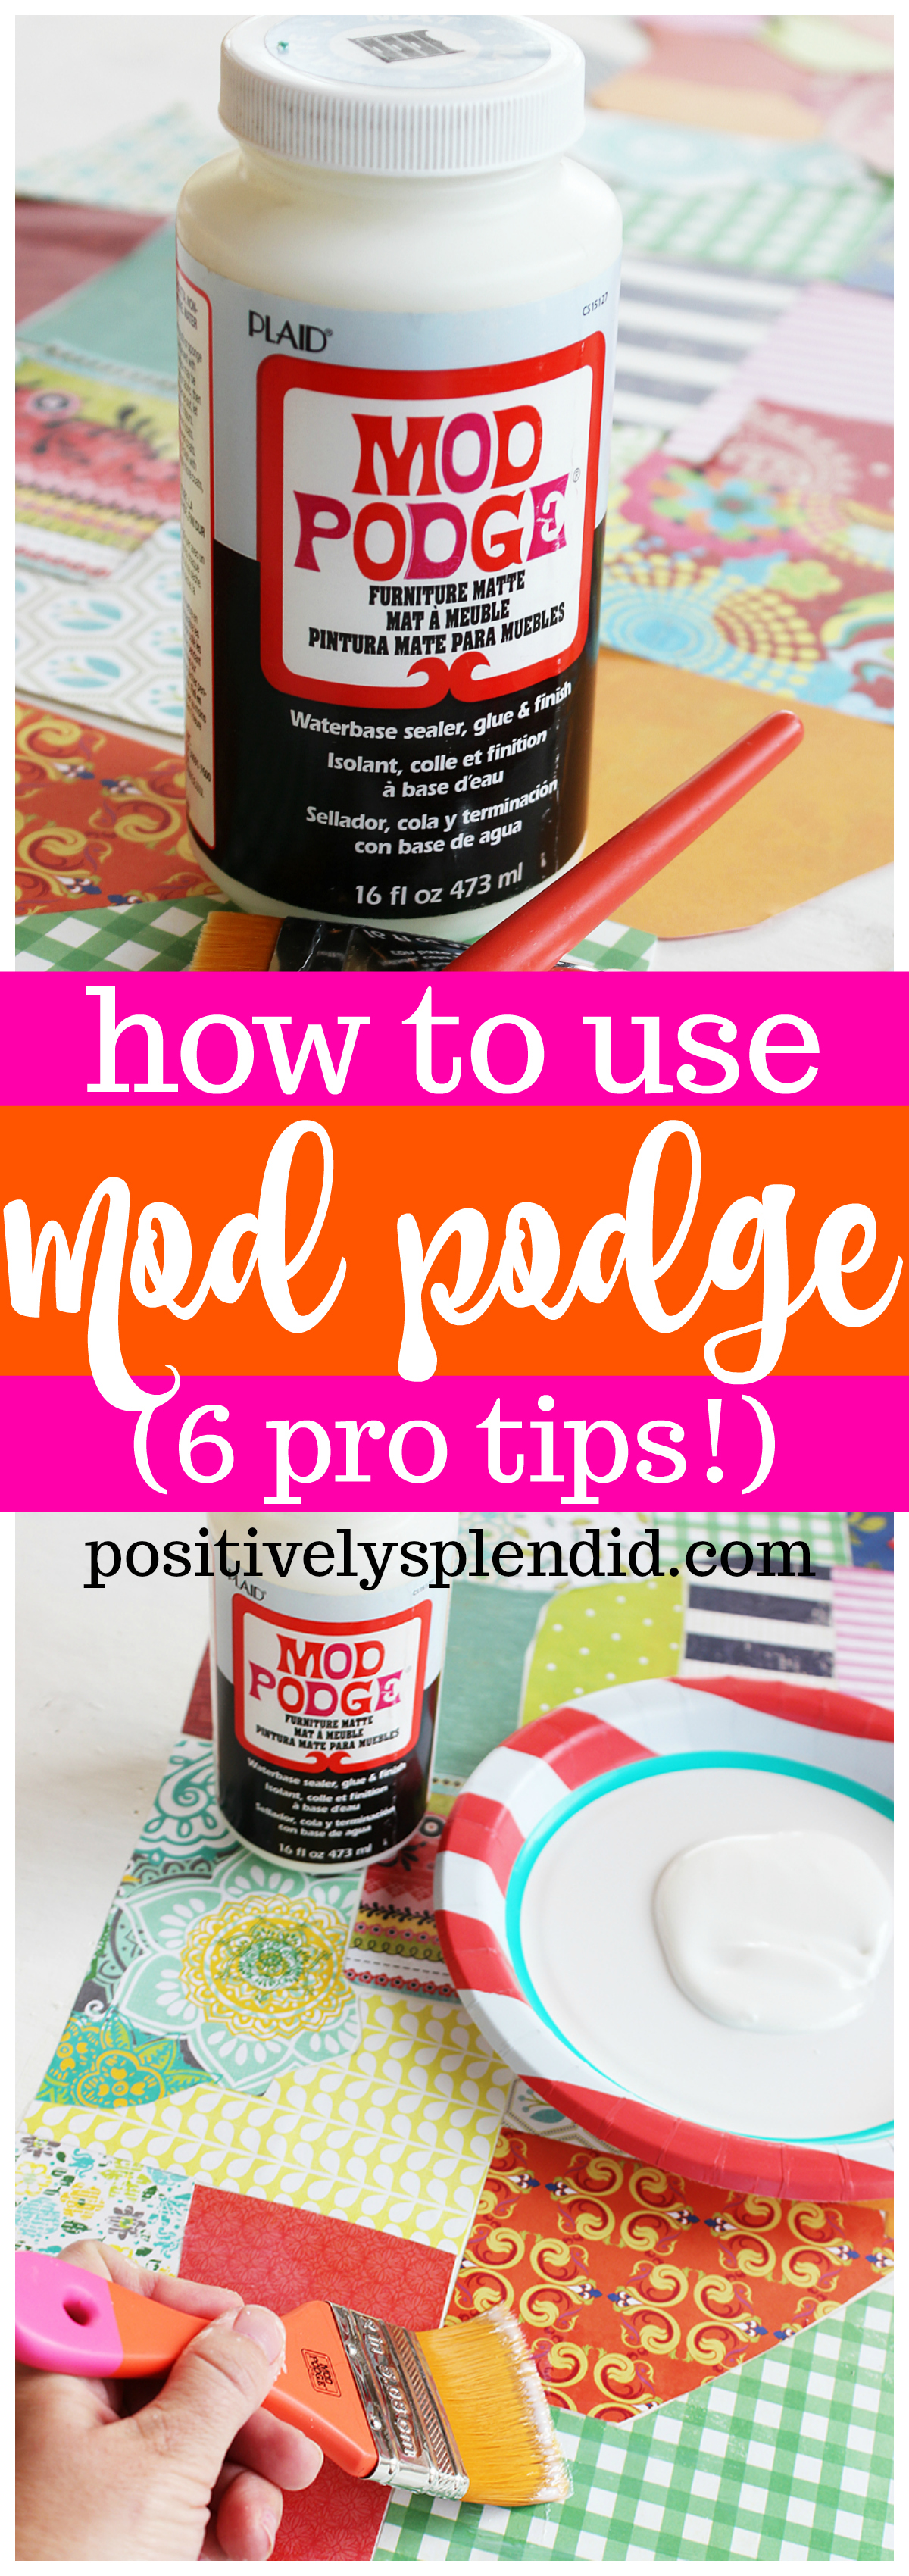 How to Use Mod Podge LIke a Pro - 6 Great Tips!